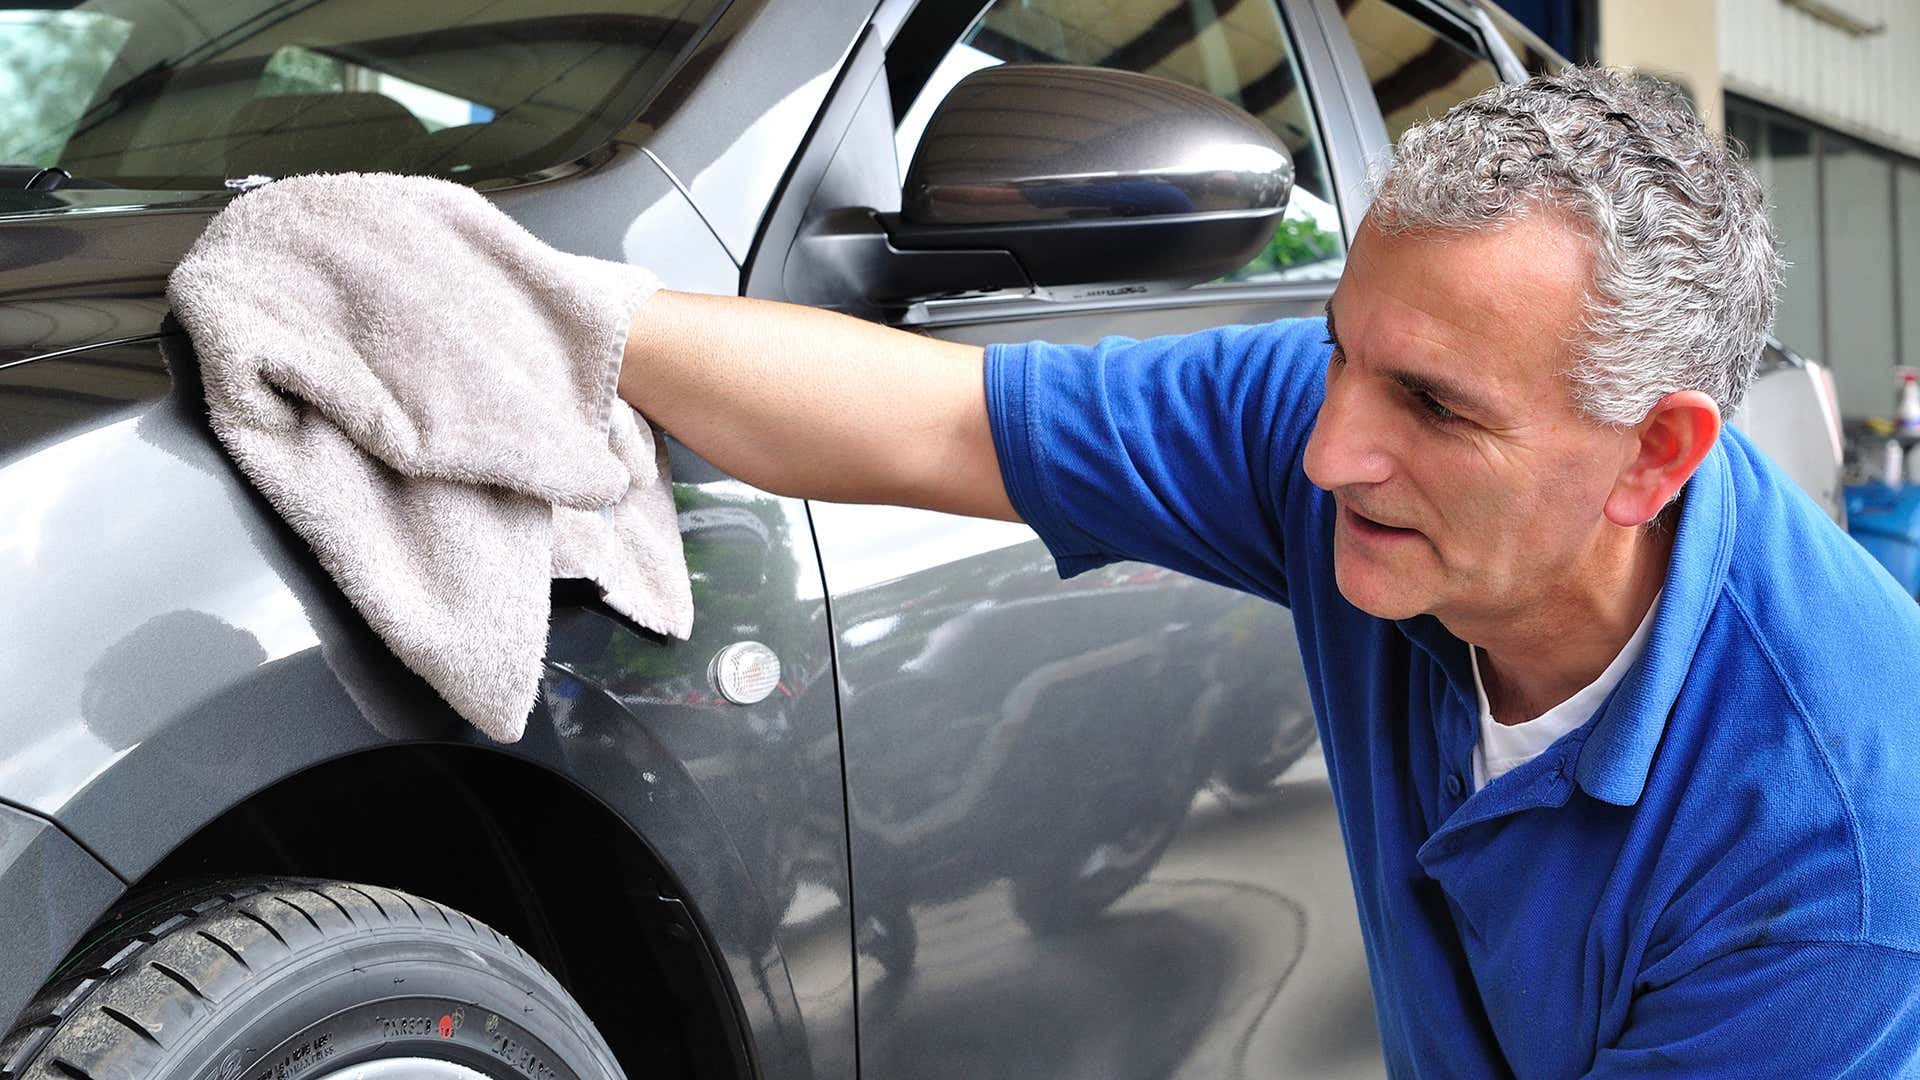 Use a microfiber towel to dry the car.